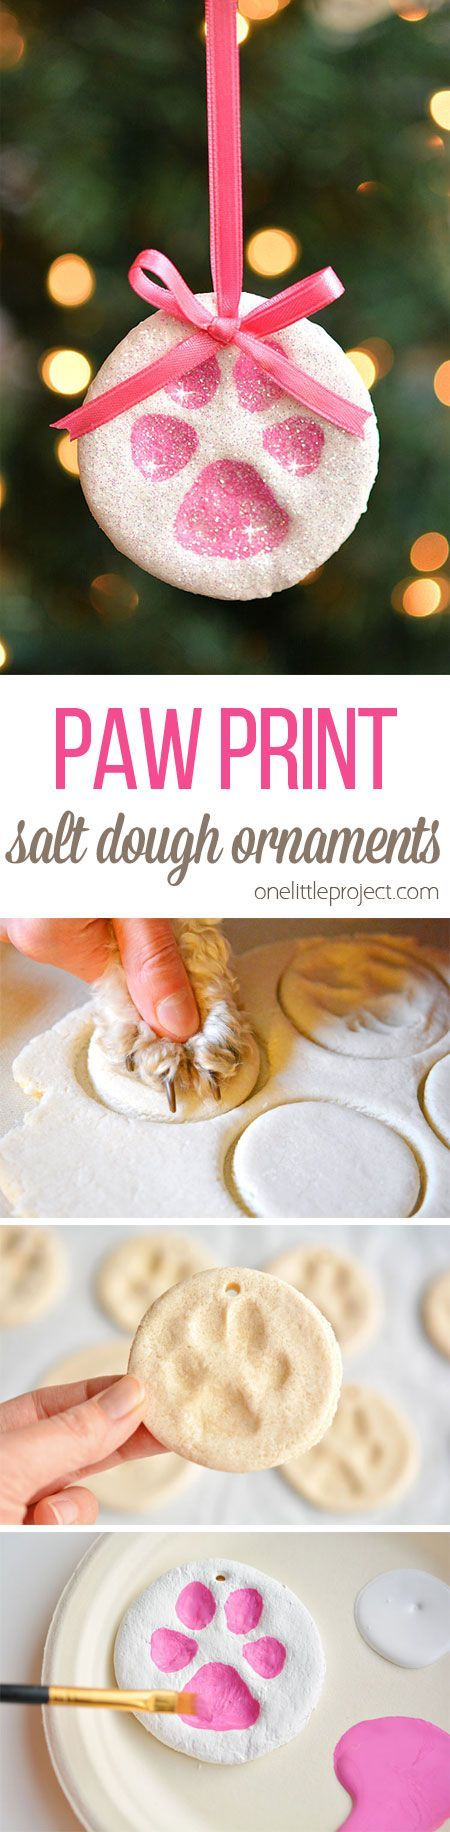 These puppy paw print salt dough ornaments are SO CUTE!! And they're such a fun way to celebrate our furry friends! Such a sweet Christmas keepsake idea!: